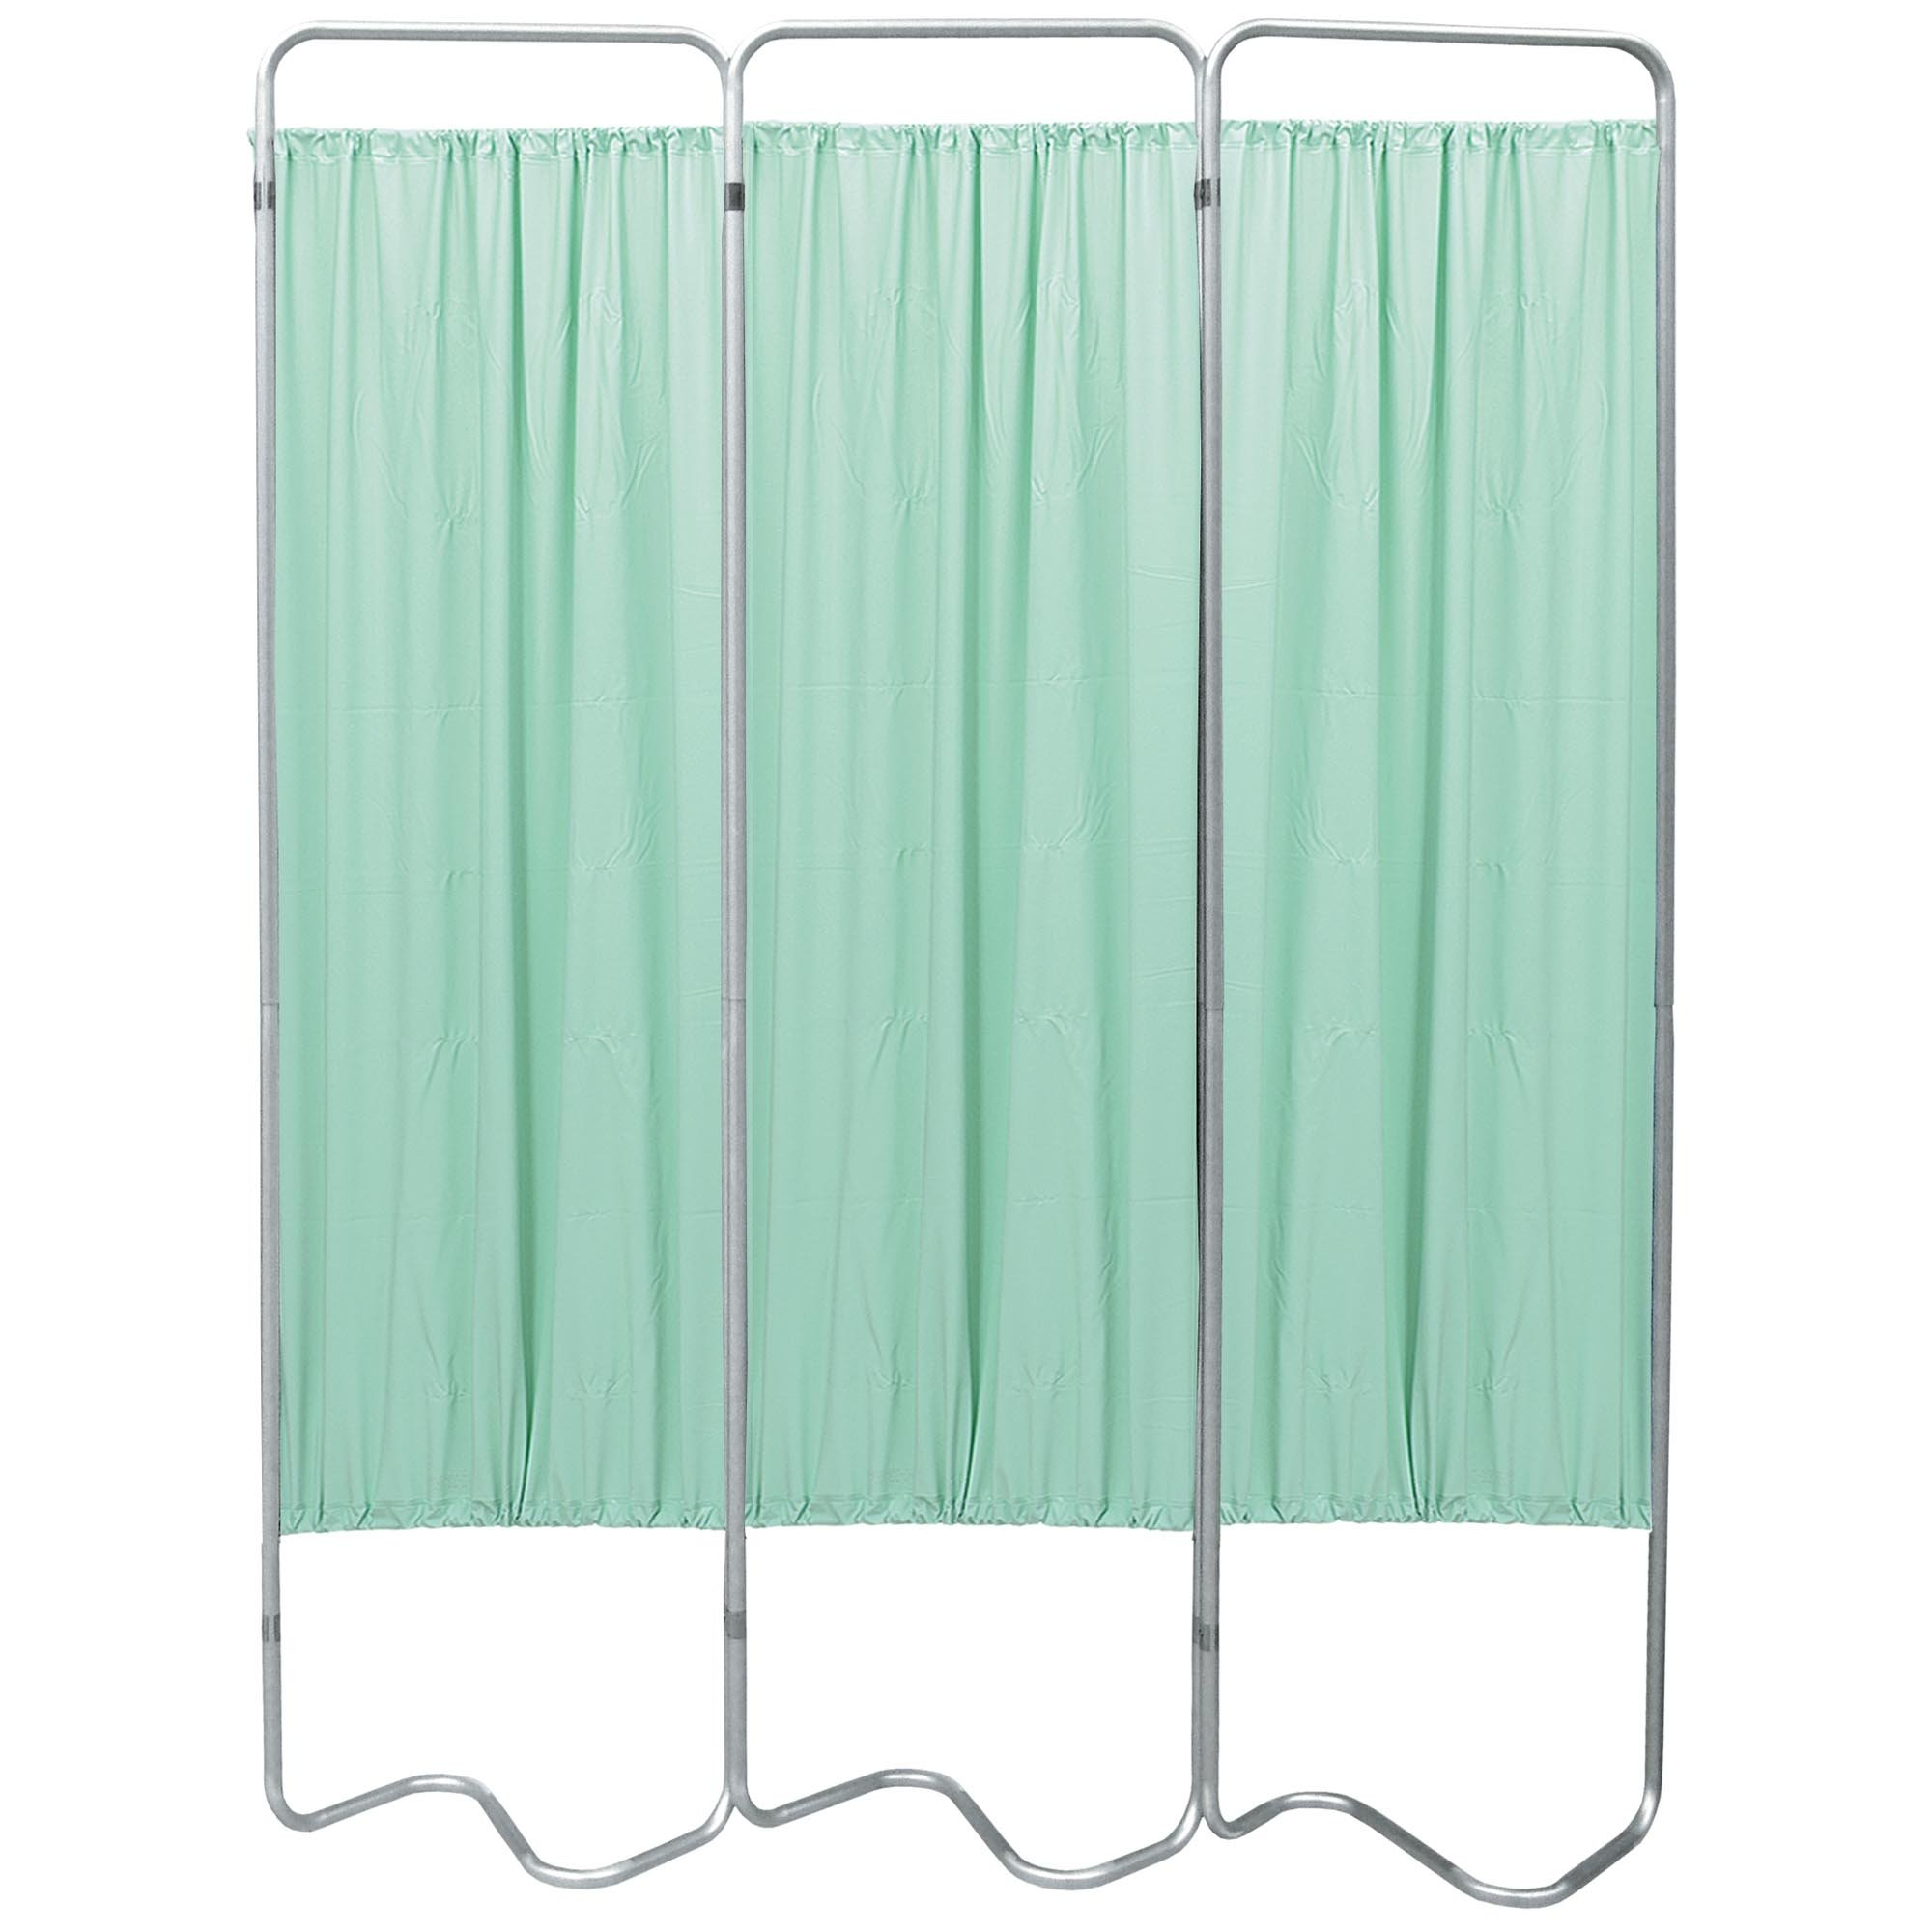 Beamatic 3 Section Folding Privacy Screen - Green Vinyl Screen Panel